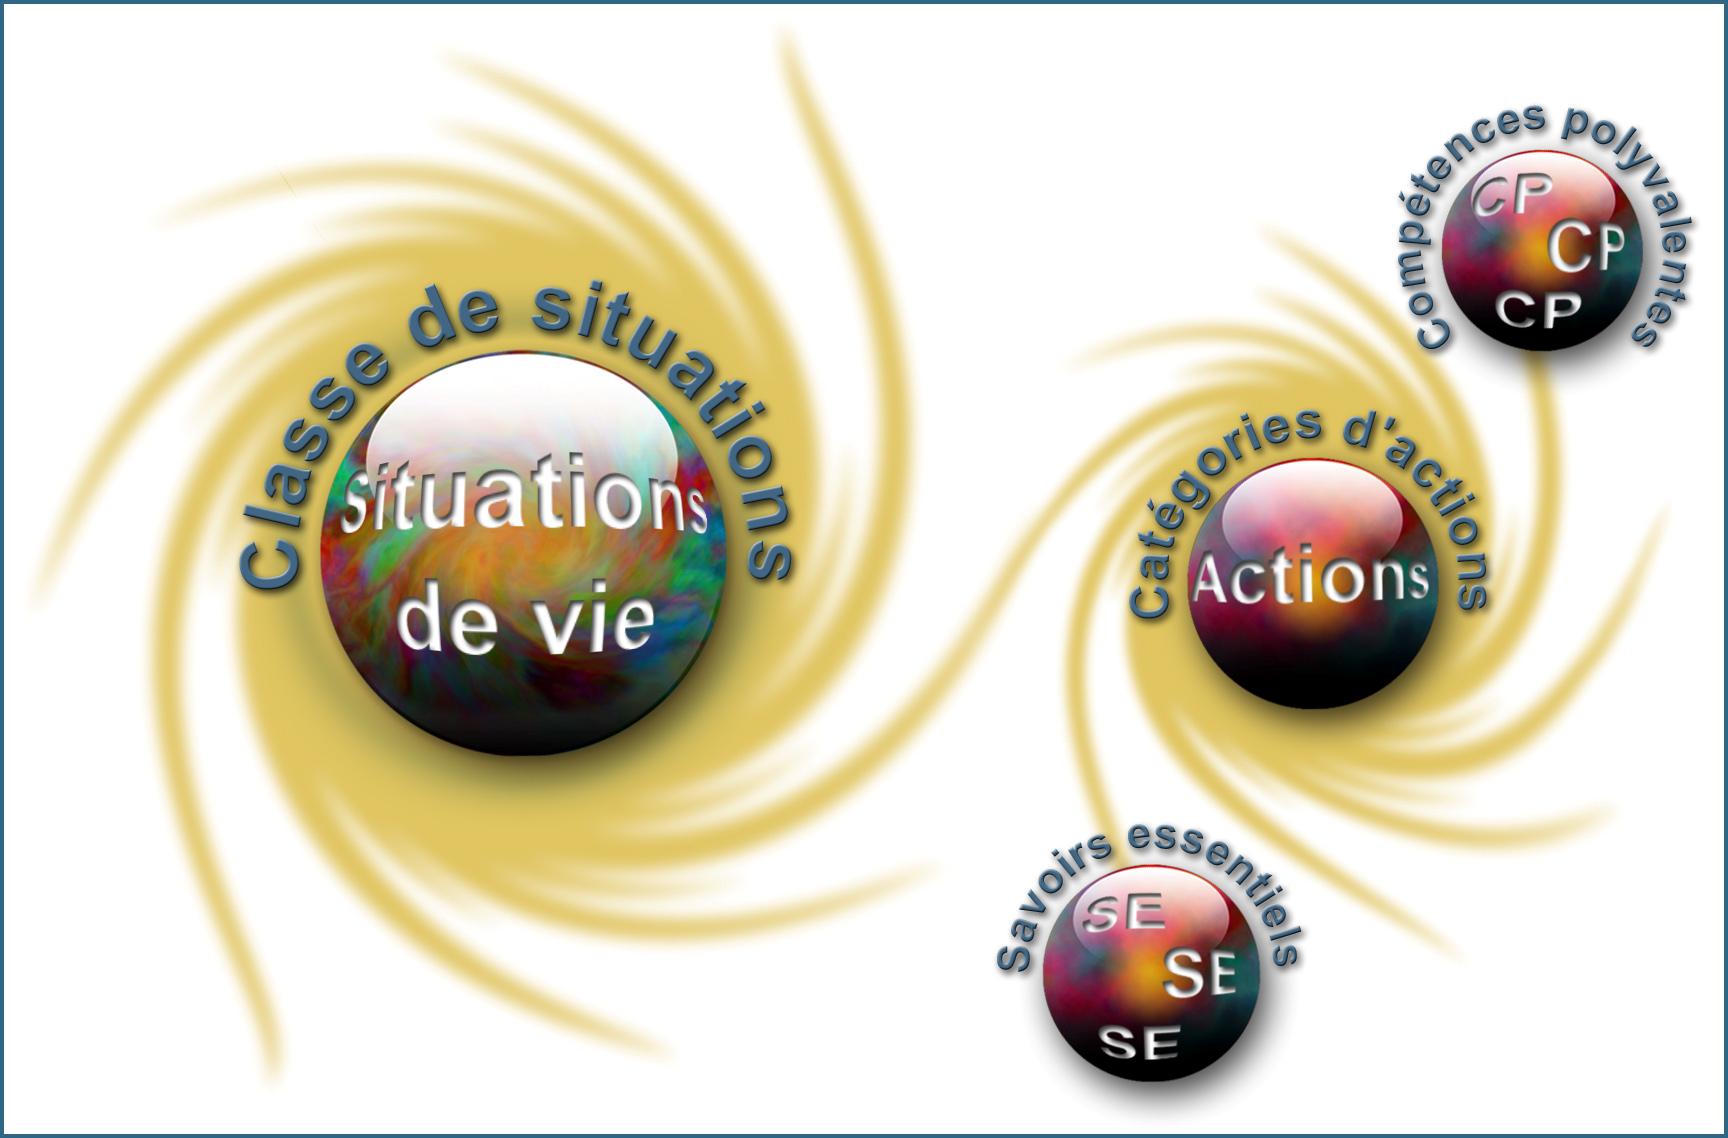 Programme de la formation de base commune Traitement des situations de vie Le traitement de situations de vie repose sur des actions groupées en catégories qui mobilisent un ensemble de ressources